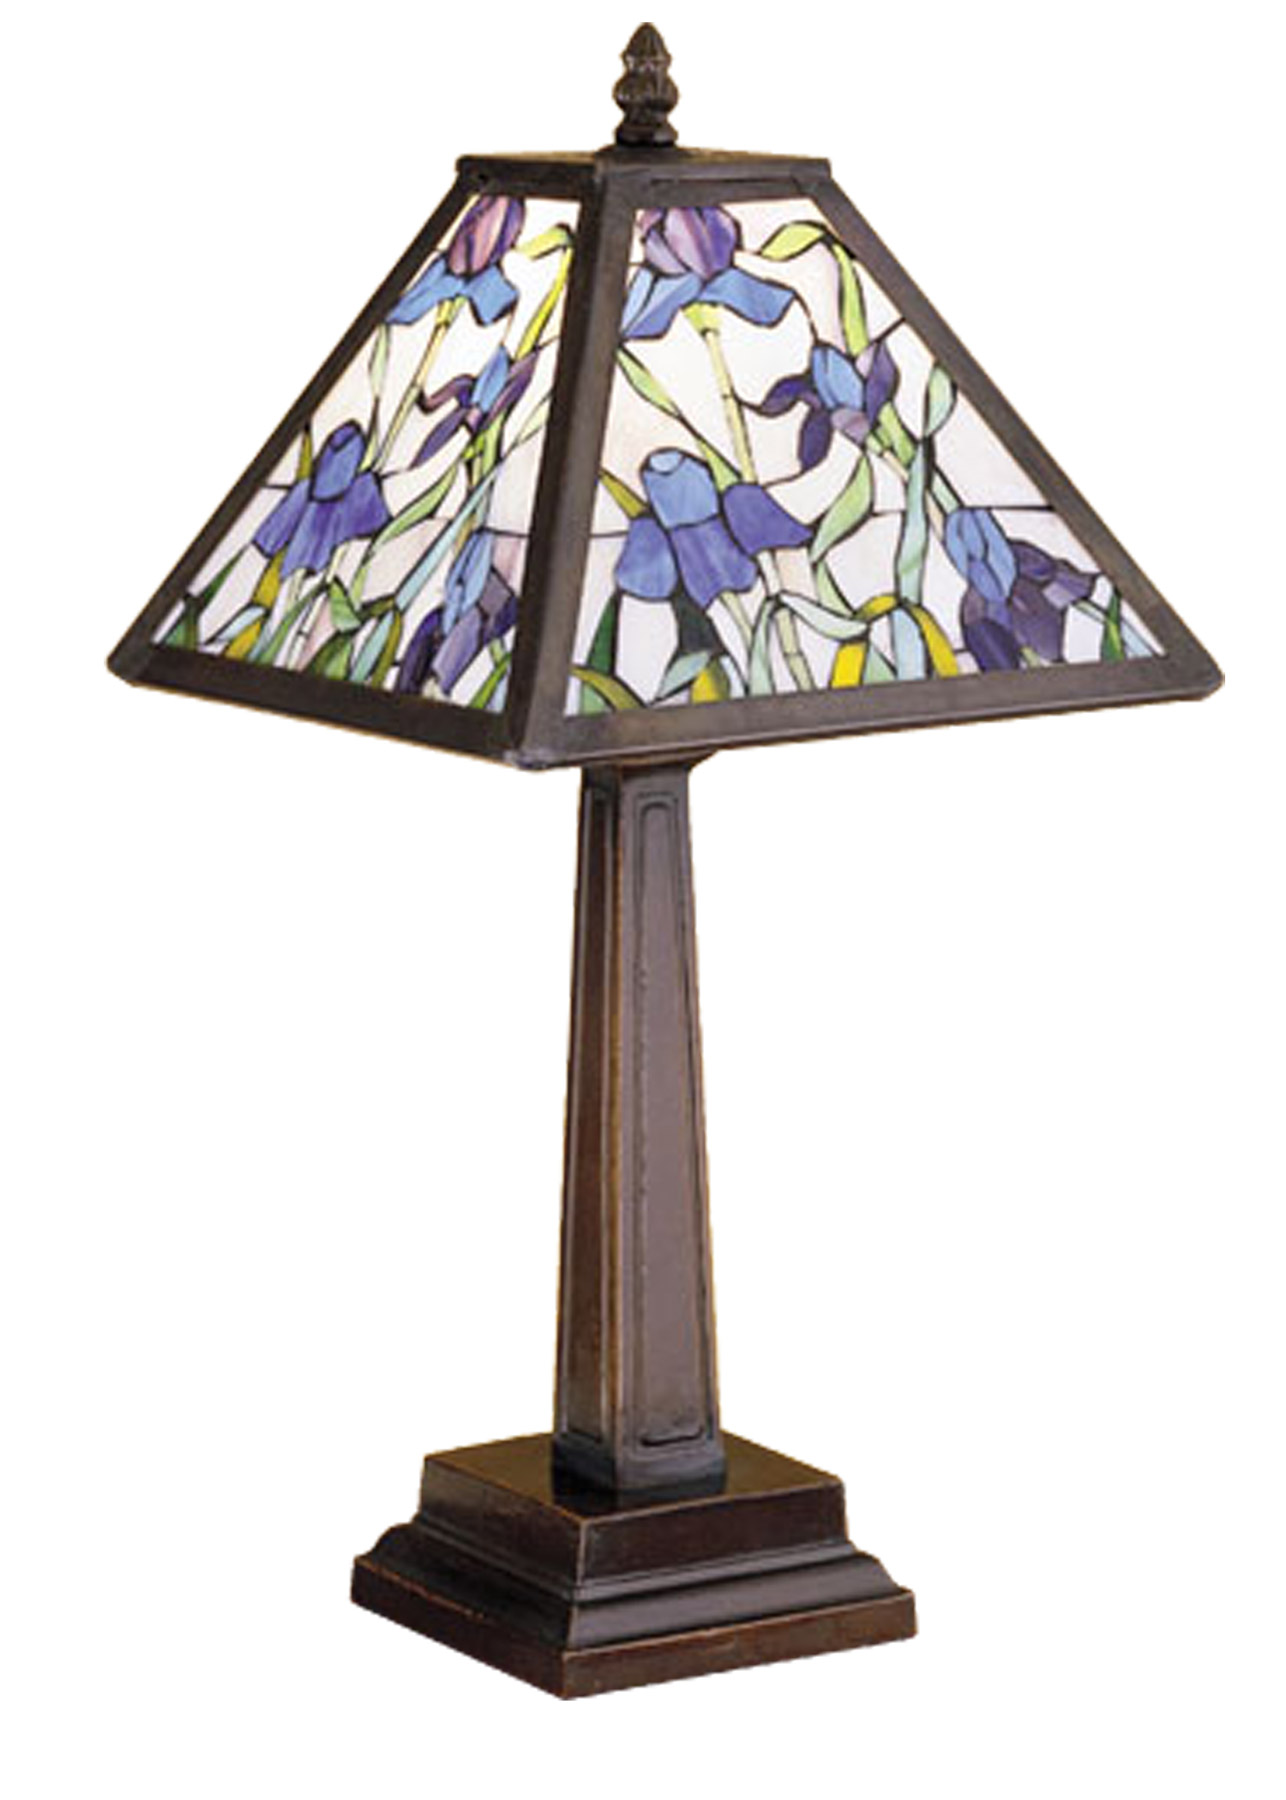 Meyda 30886 Tiffany Iris Accent Lamp